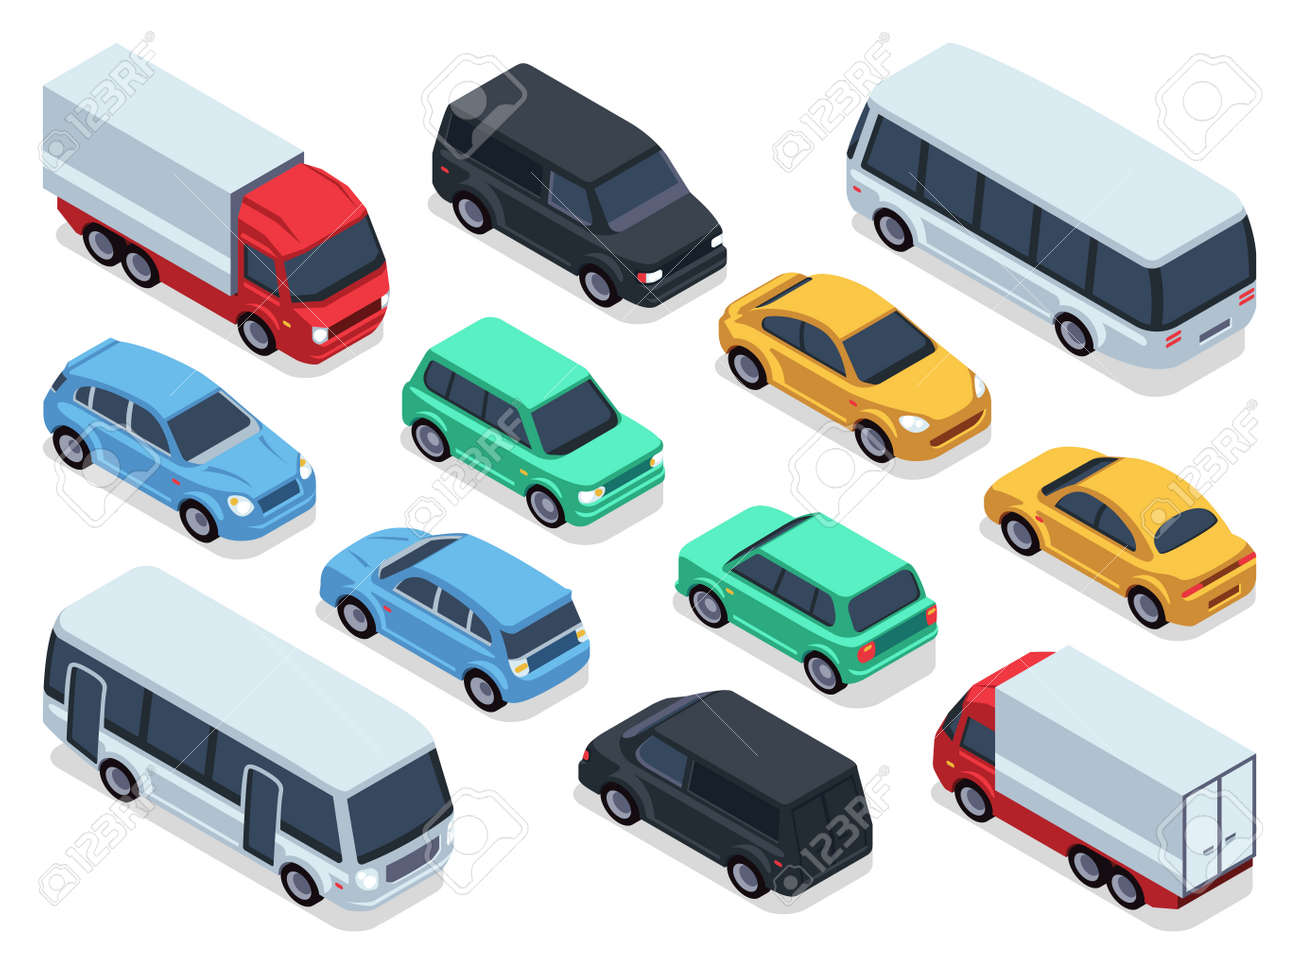 Isometric vehicles and cars for 3d city traffic map. Vector urban transport set. Transport car isometric, auto car 3d style illustration - 165866932